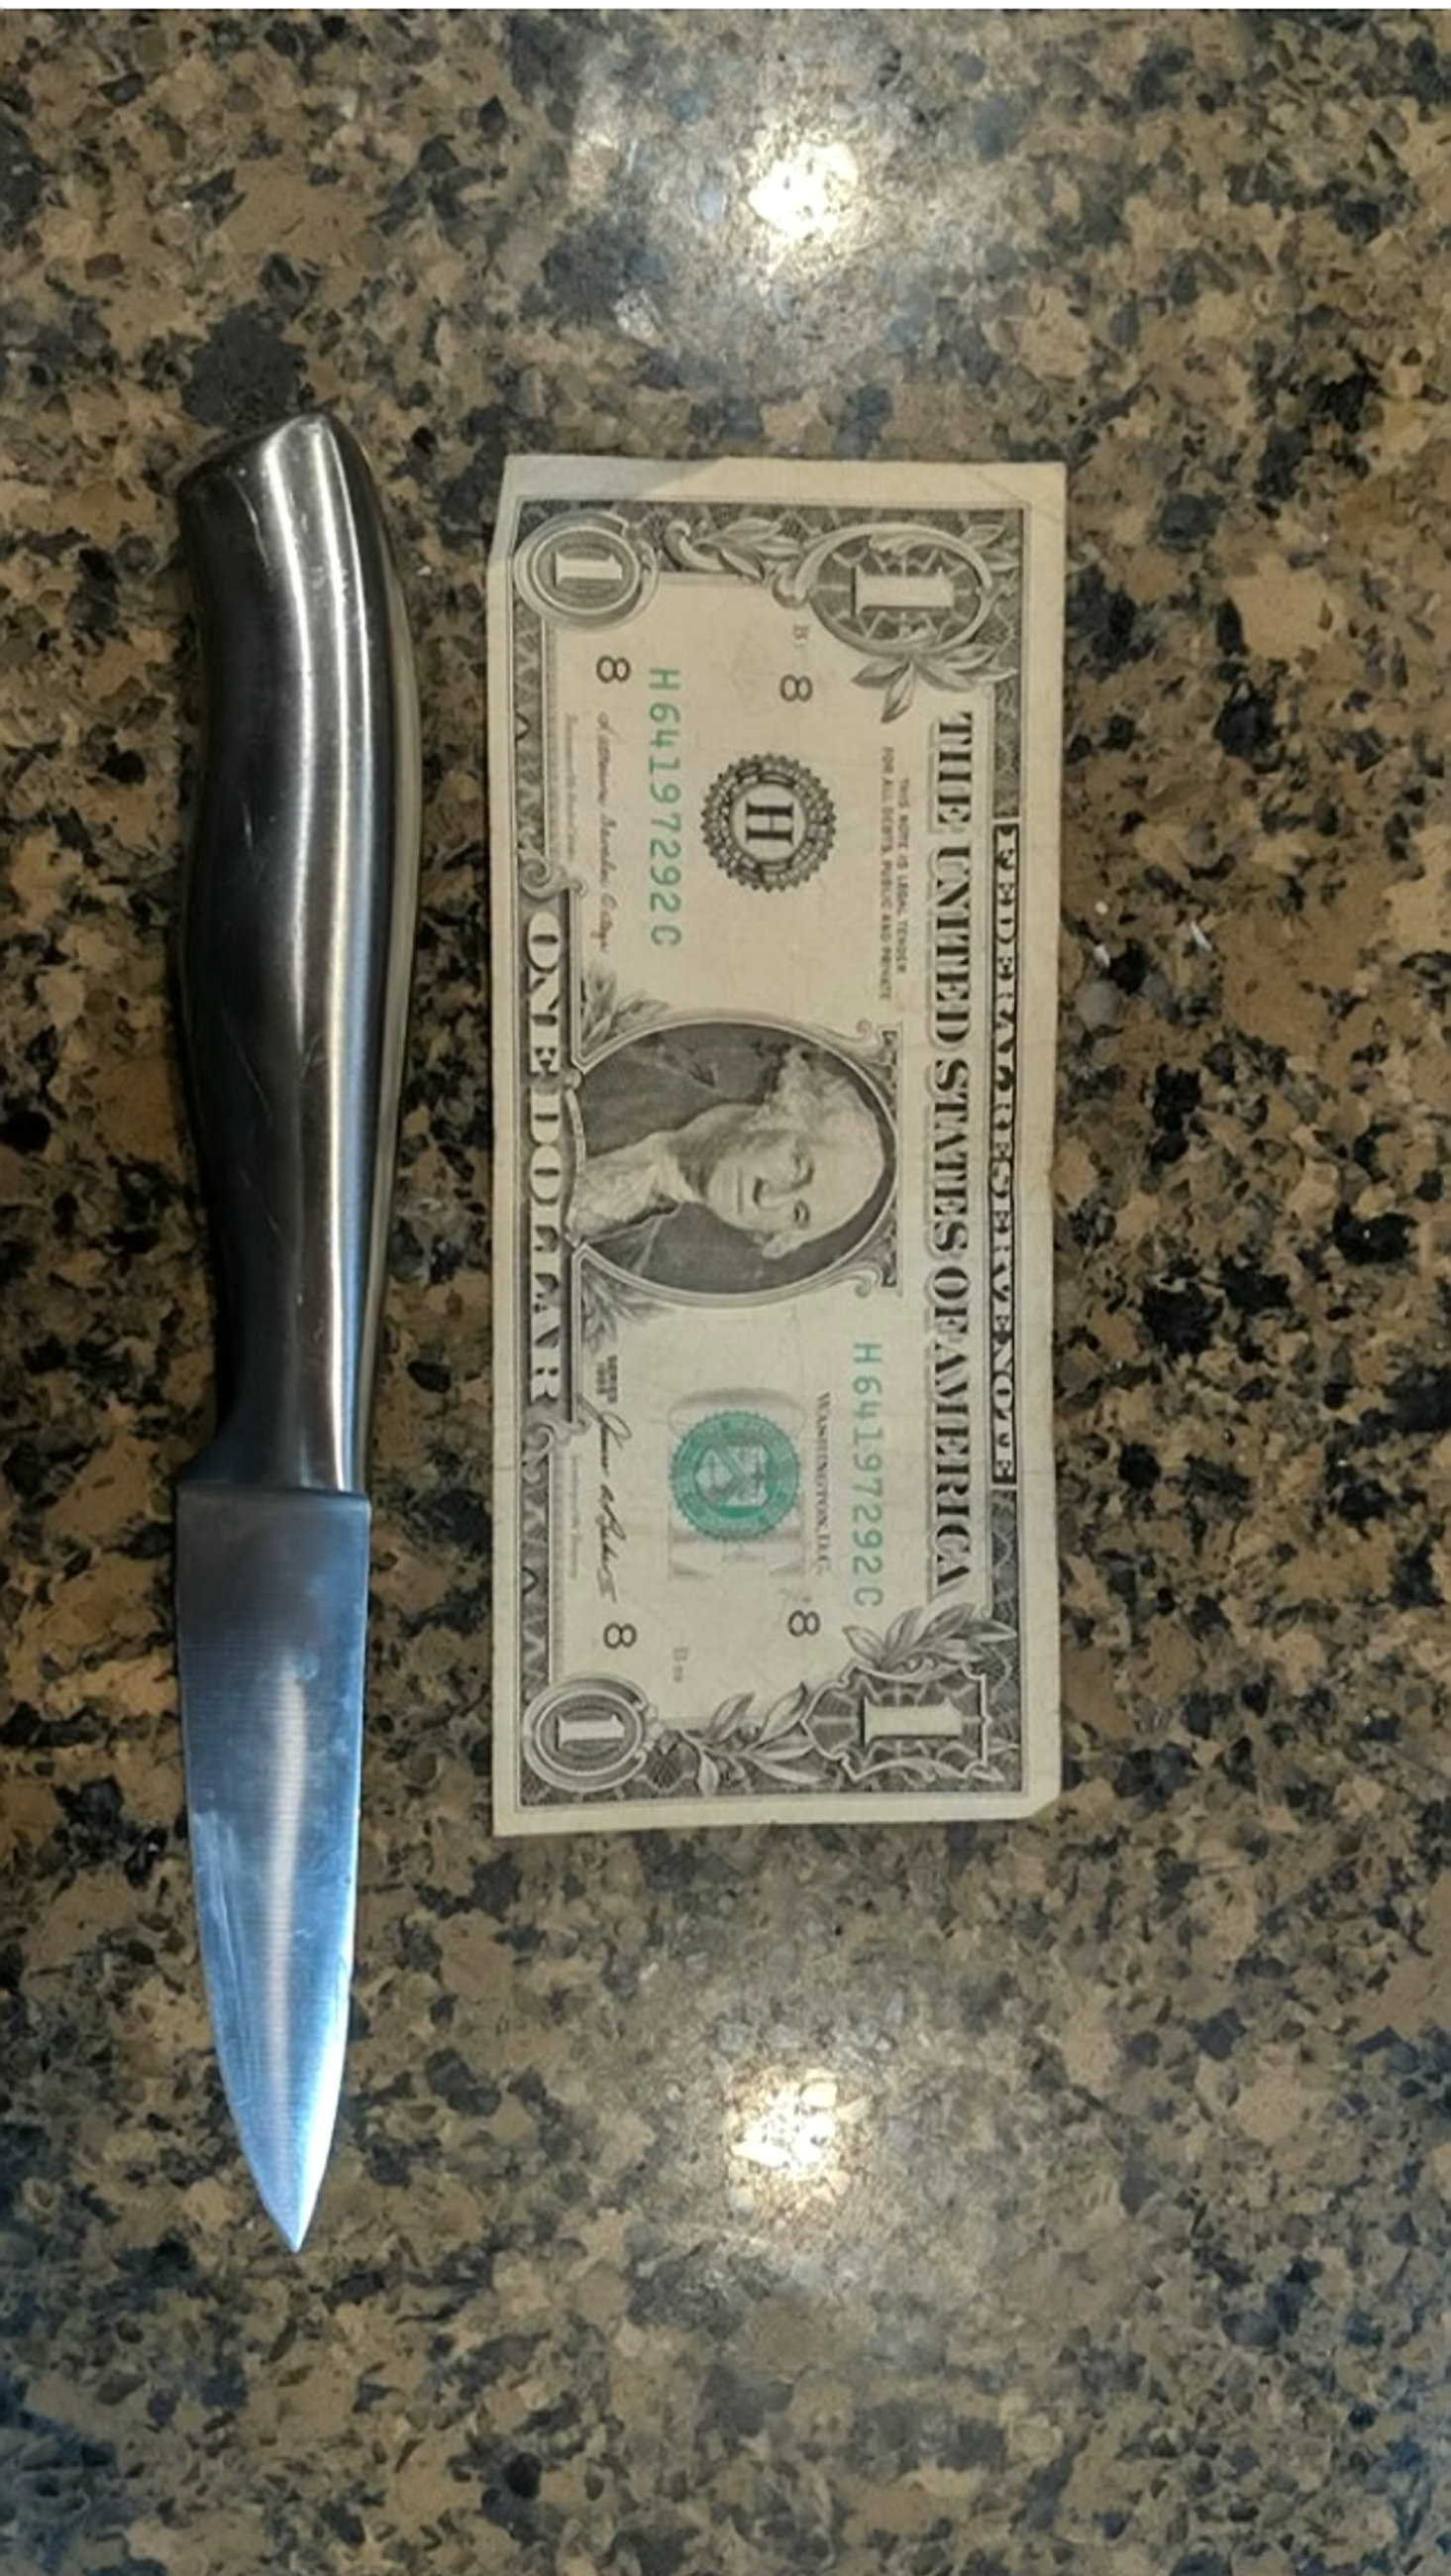 The offending knife that cut Melissa's hand open. Credit: SWNS